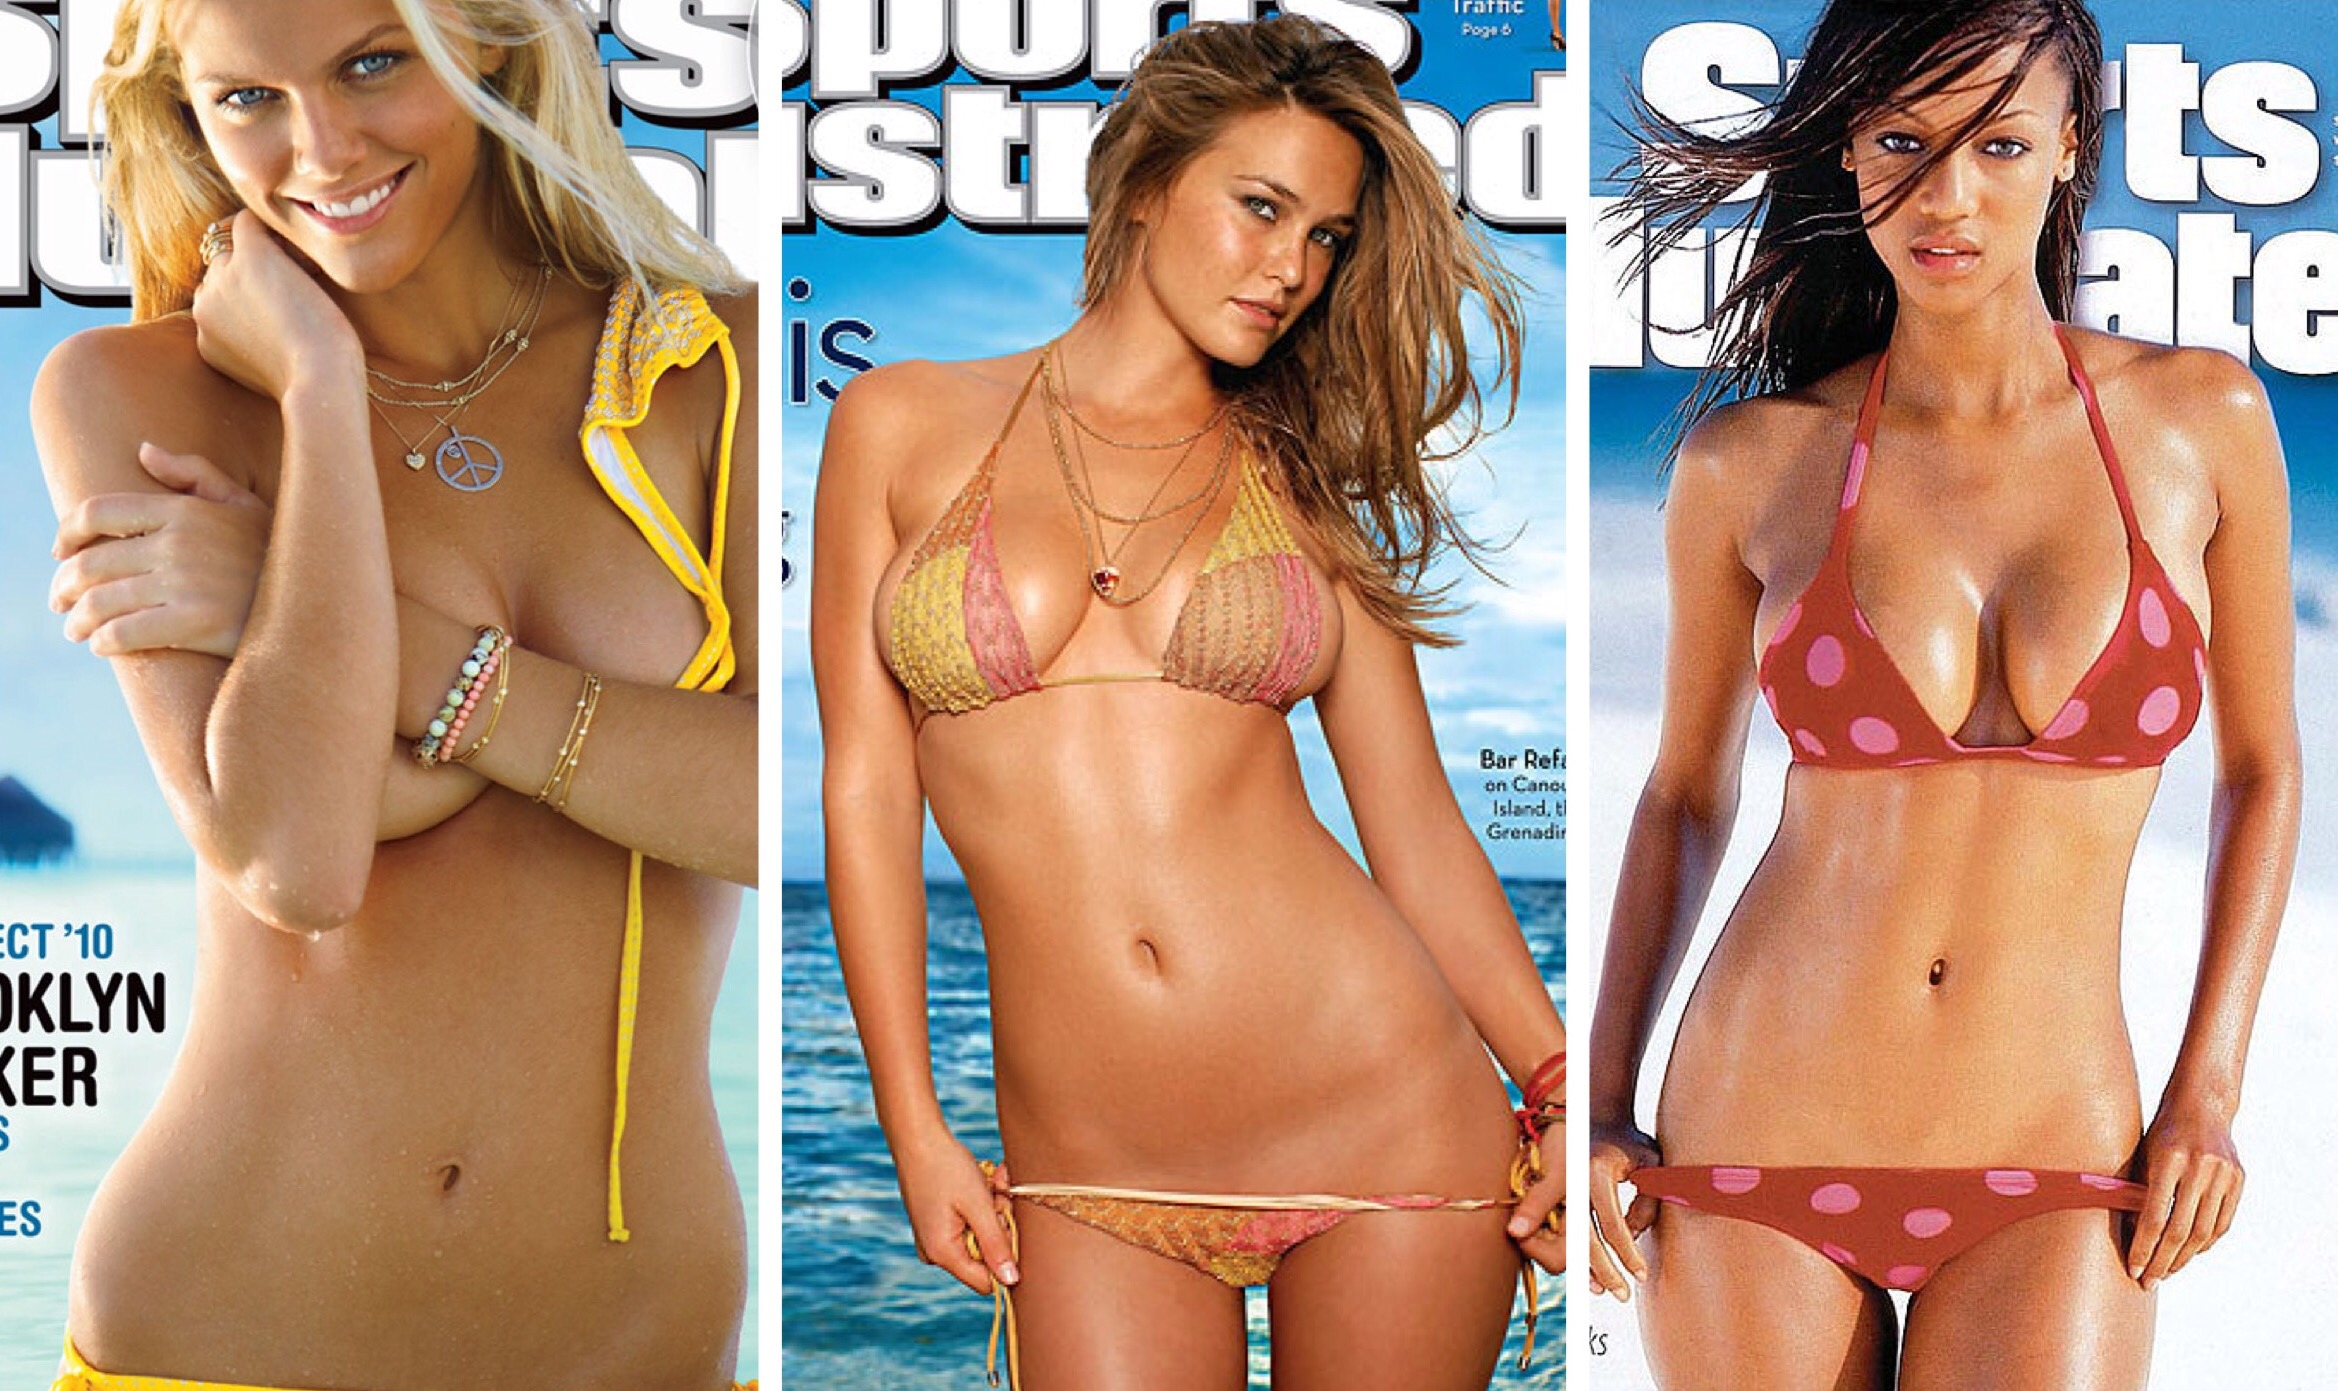 Sports illustrated swimsuit covers